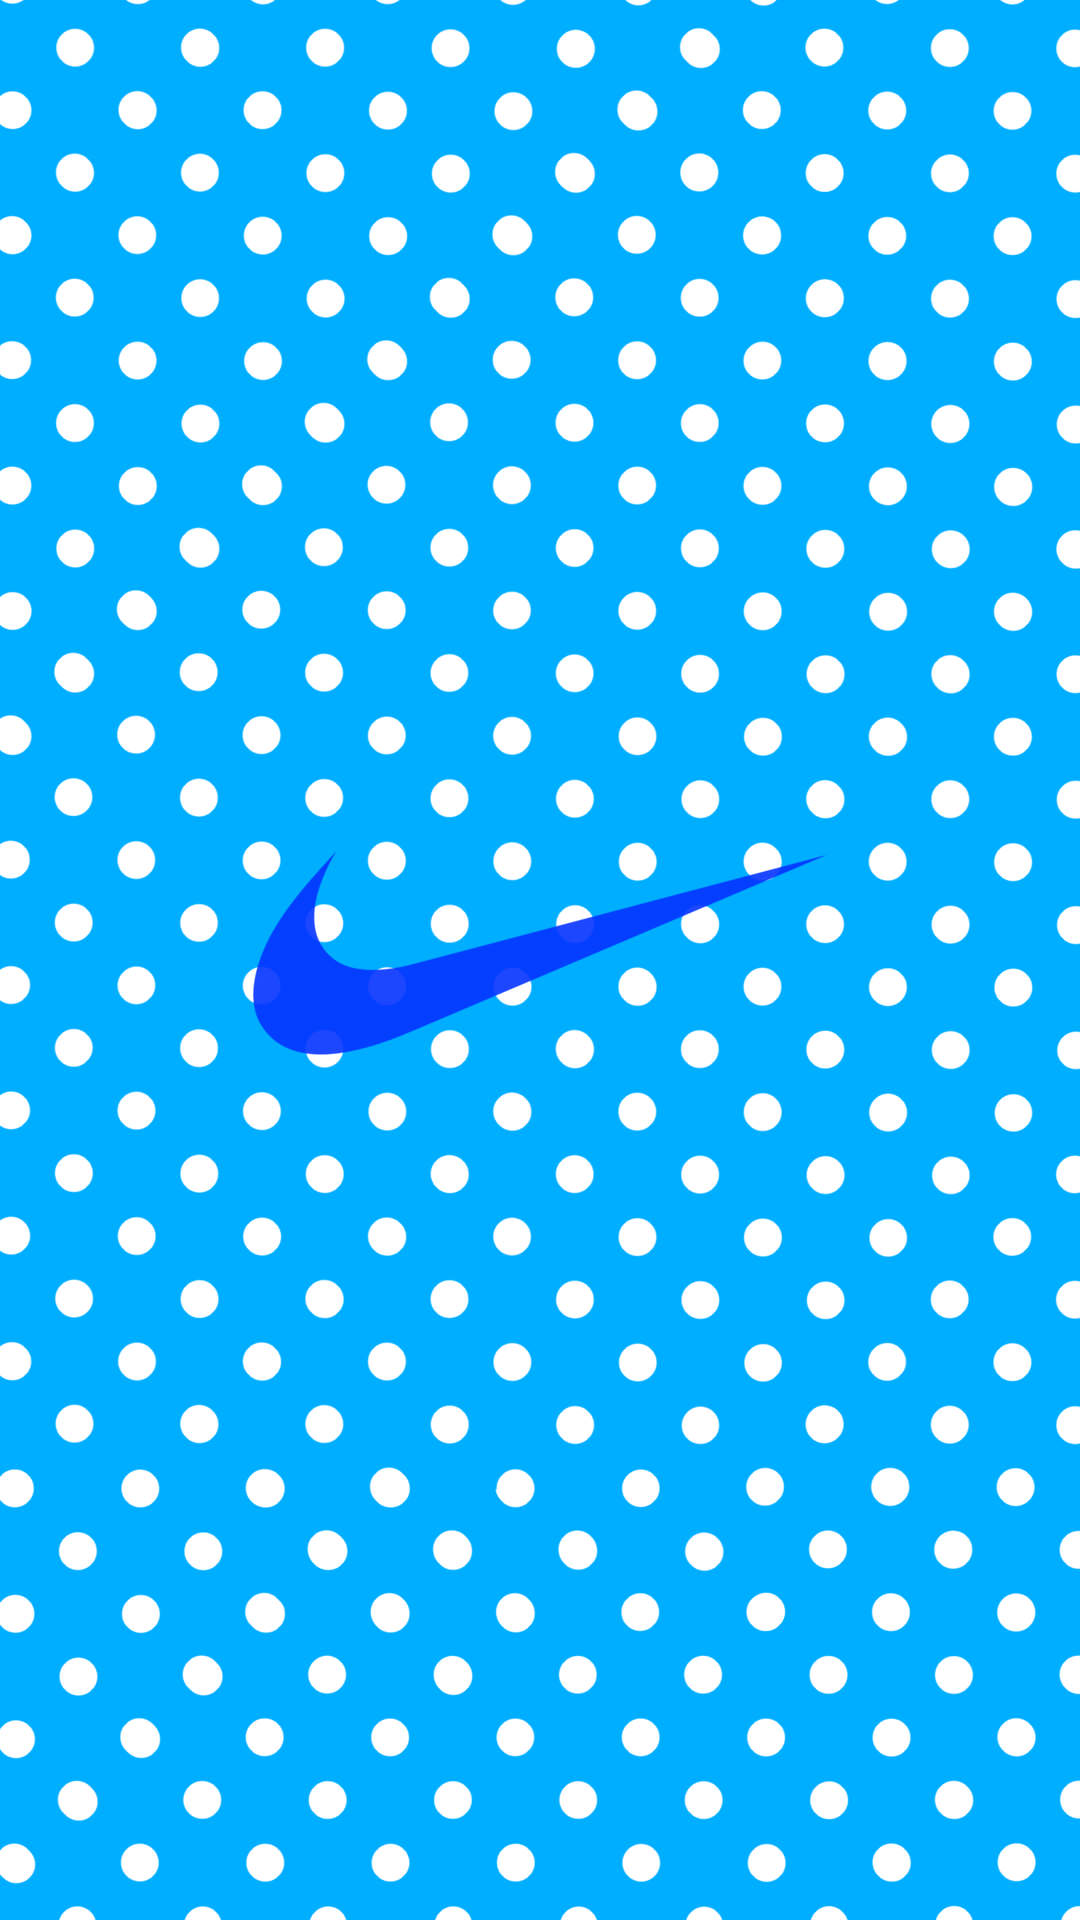 nike32 - 37 NIKE HQ Smartphone Wallpaper Collection